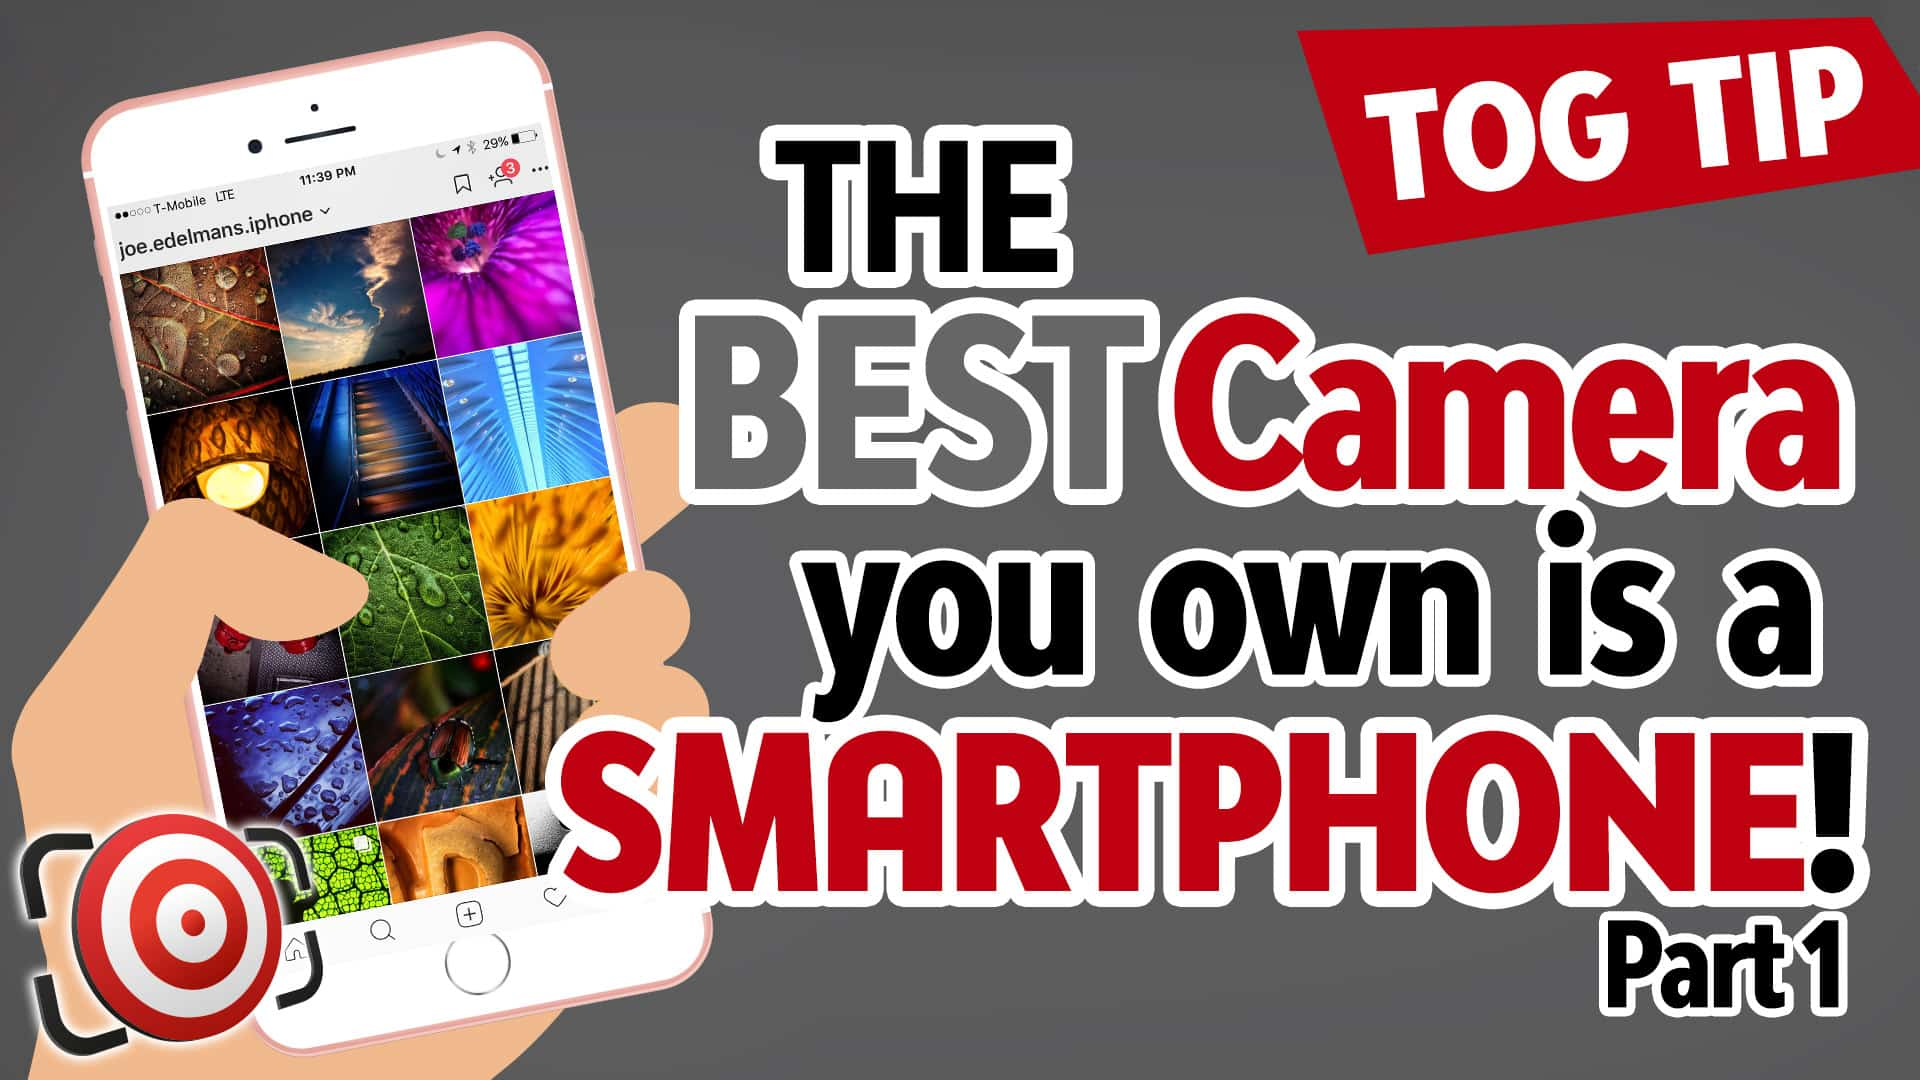 Photo of Your smartphone is the BEST camera you own to dramatically improve your photography. Part 1